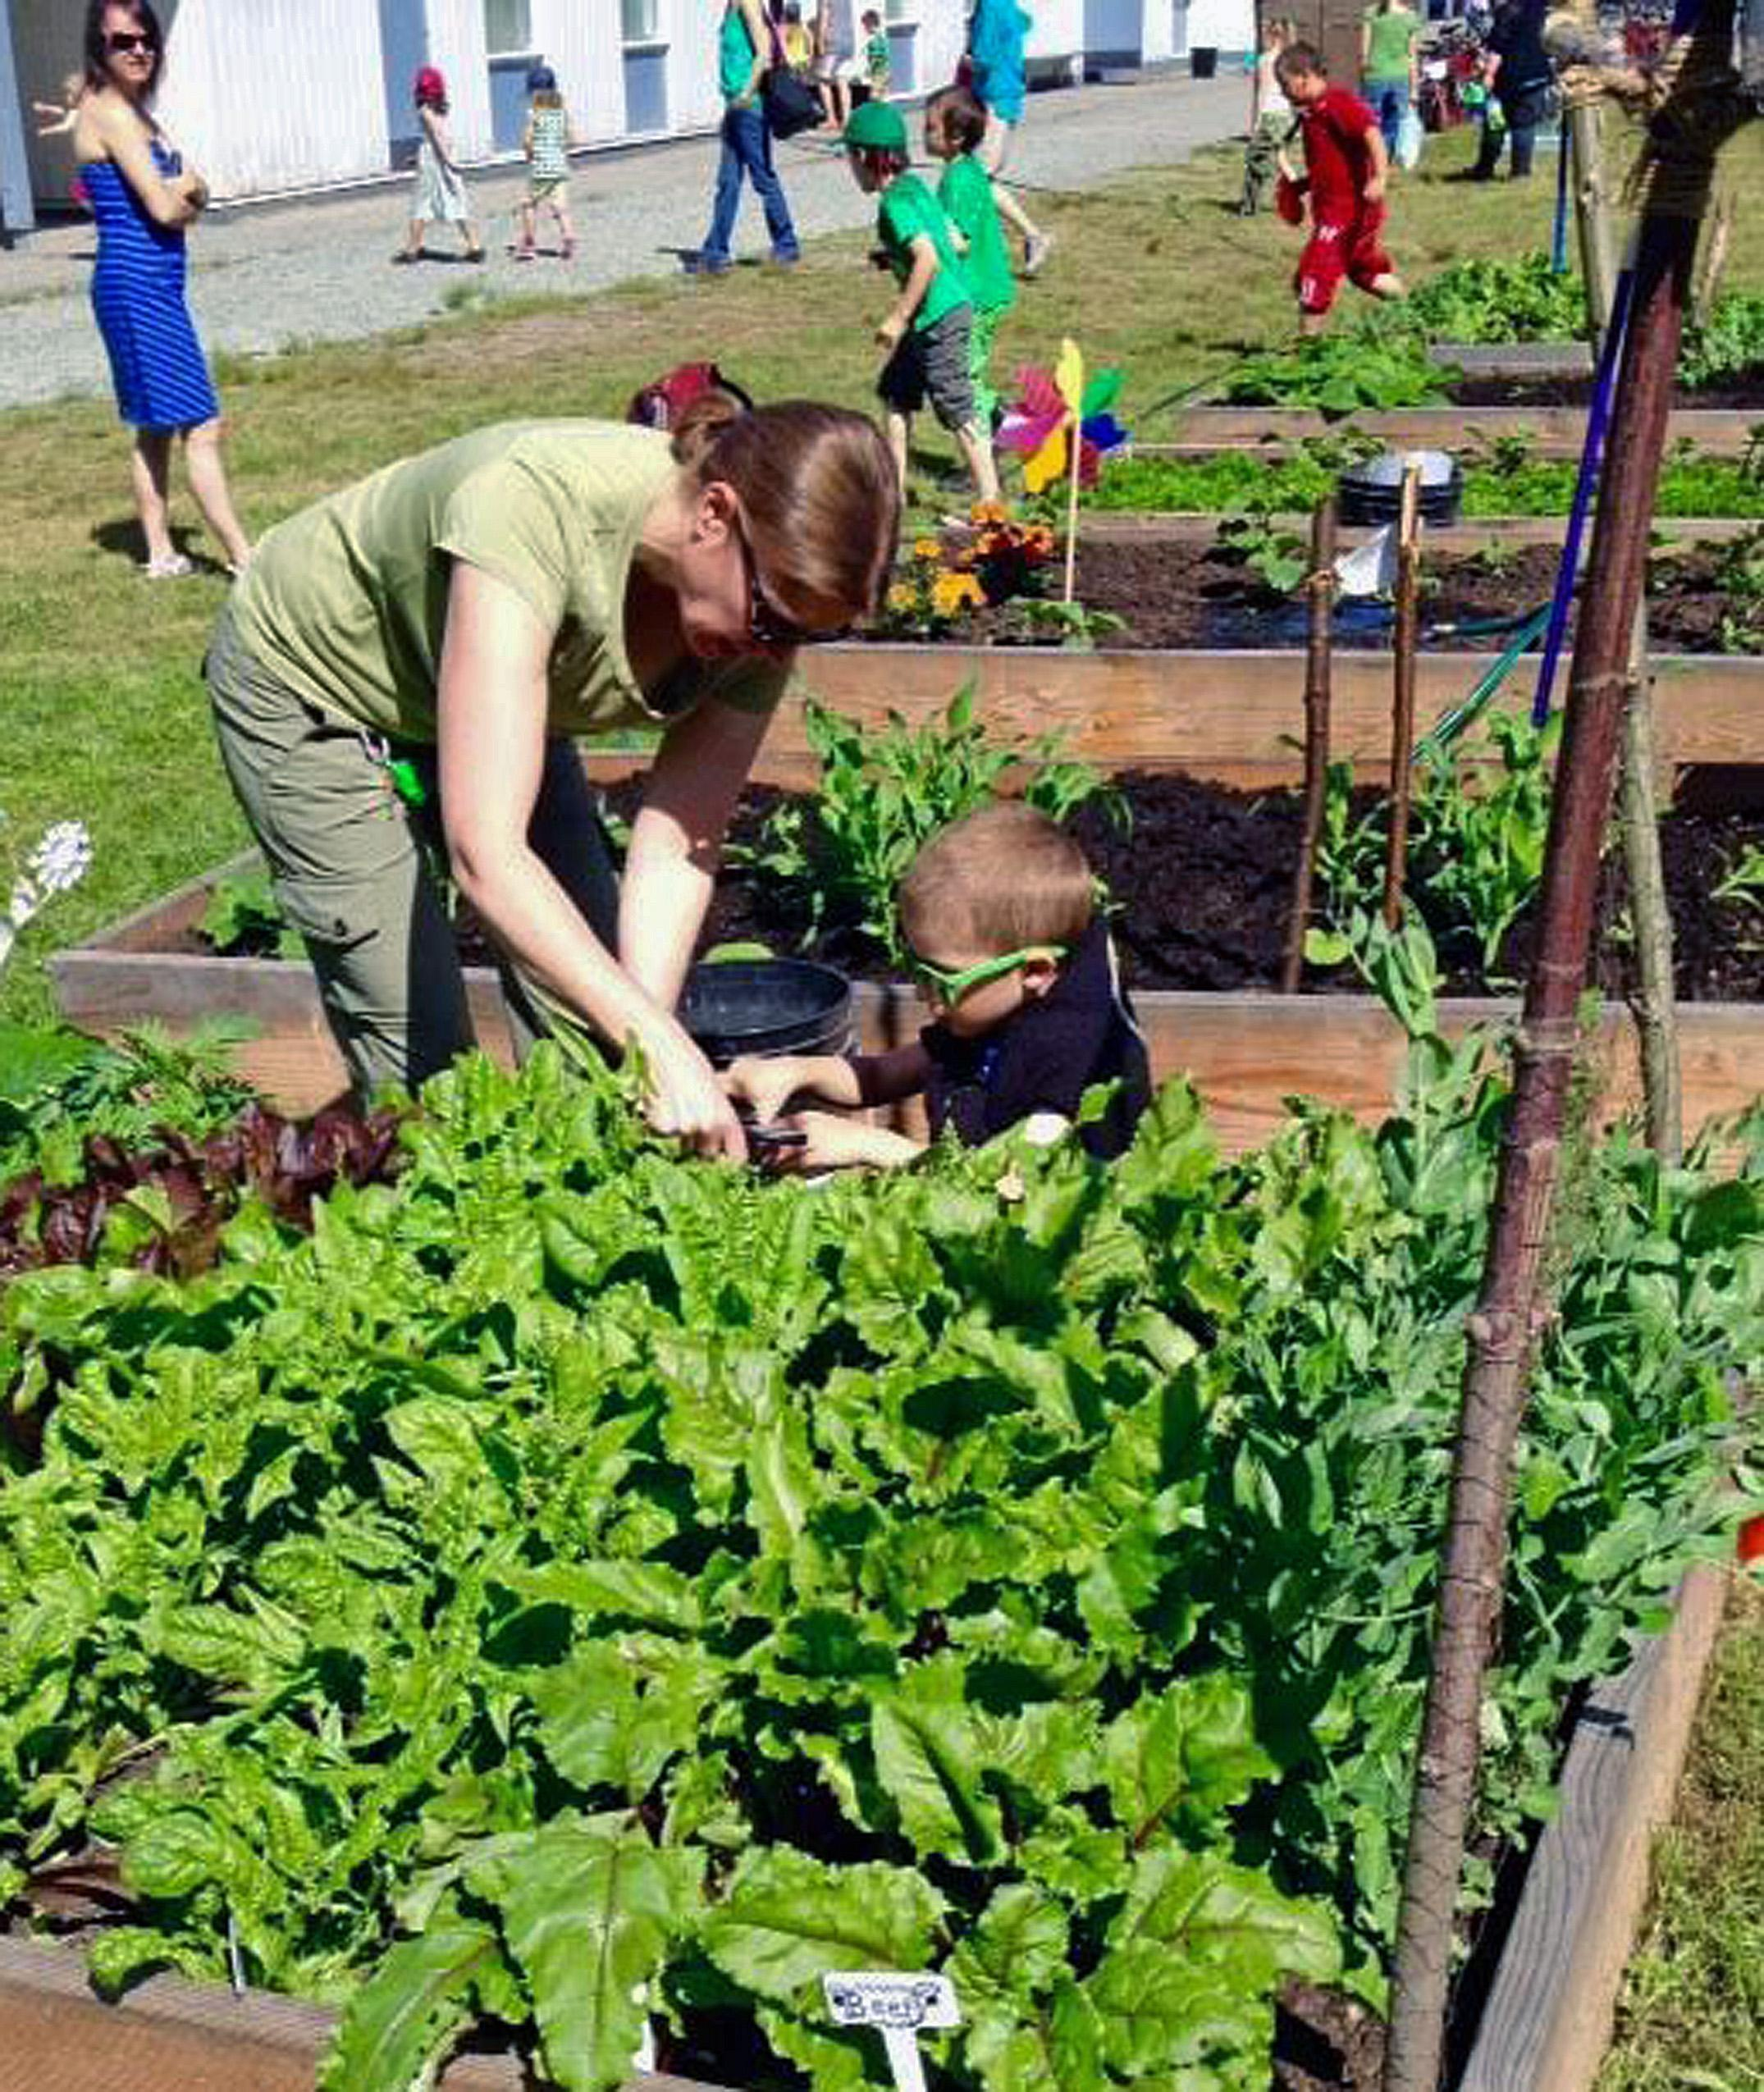 Students and staff working in the garden beds